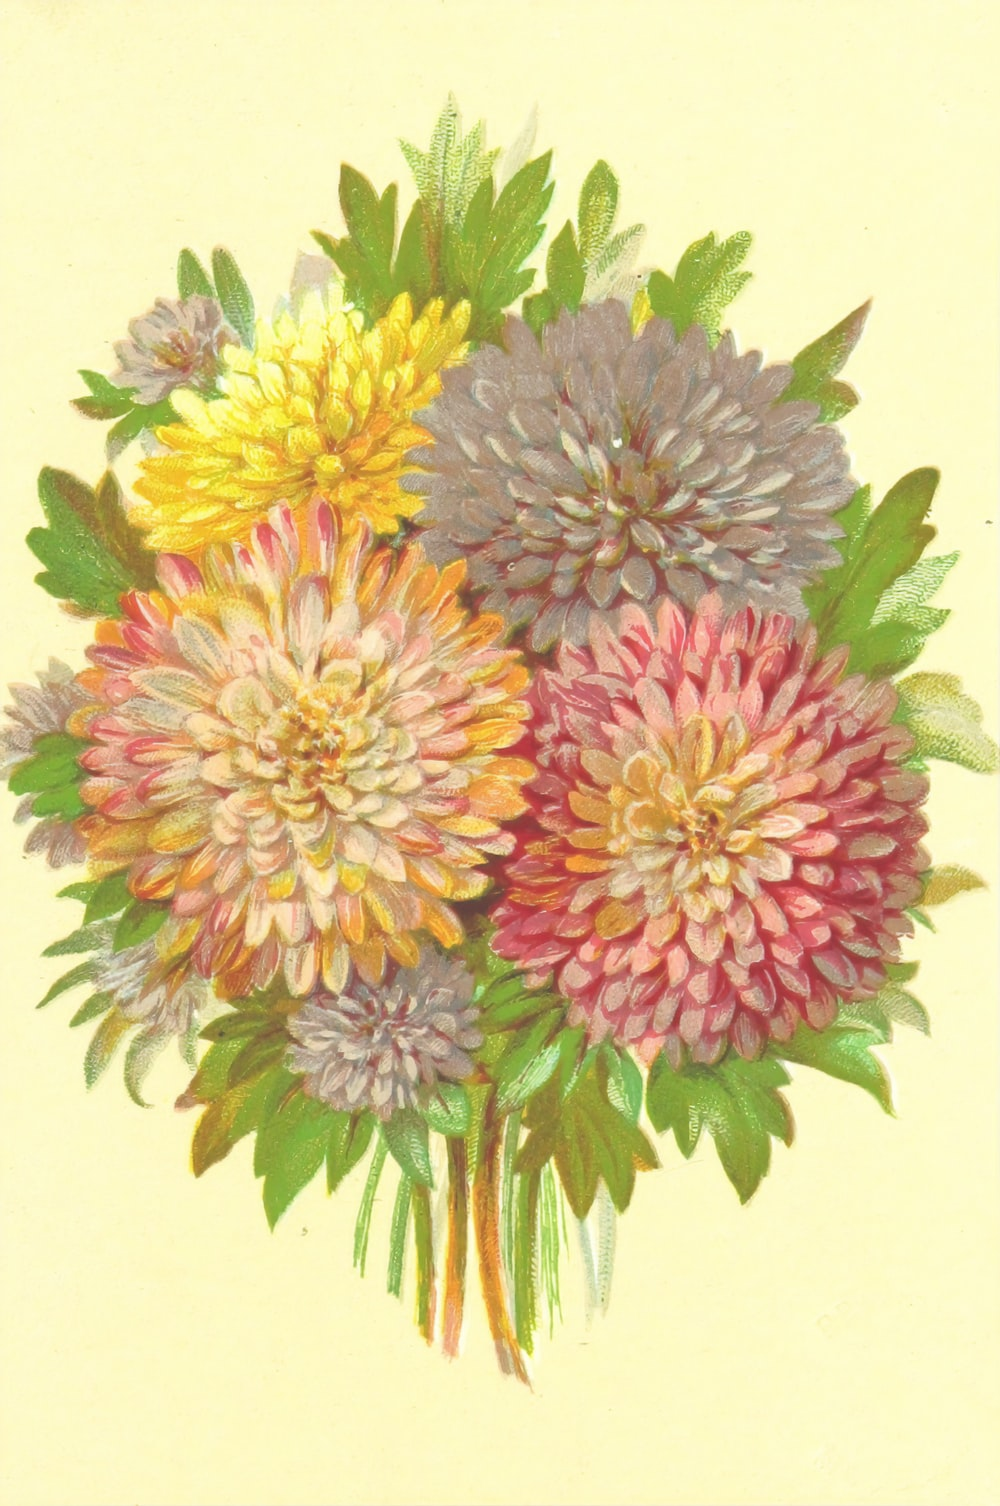 yellow and pink flower illustration